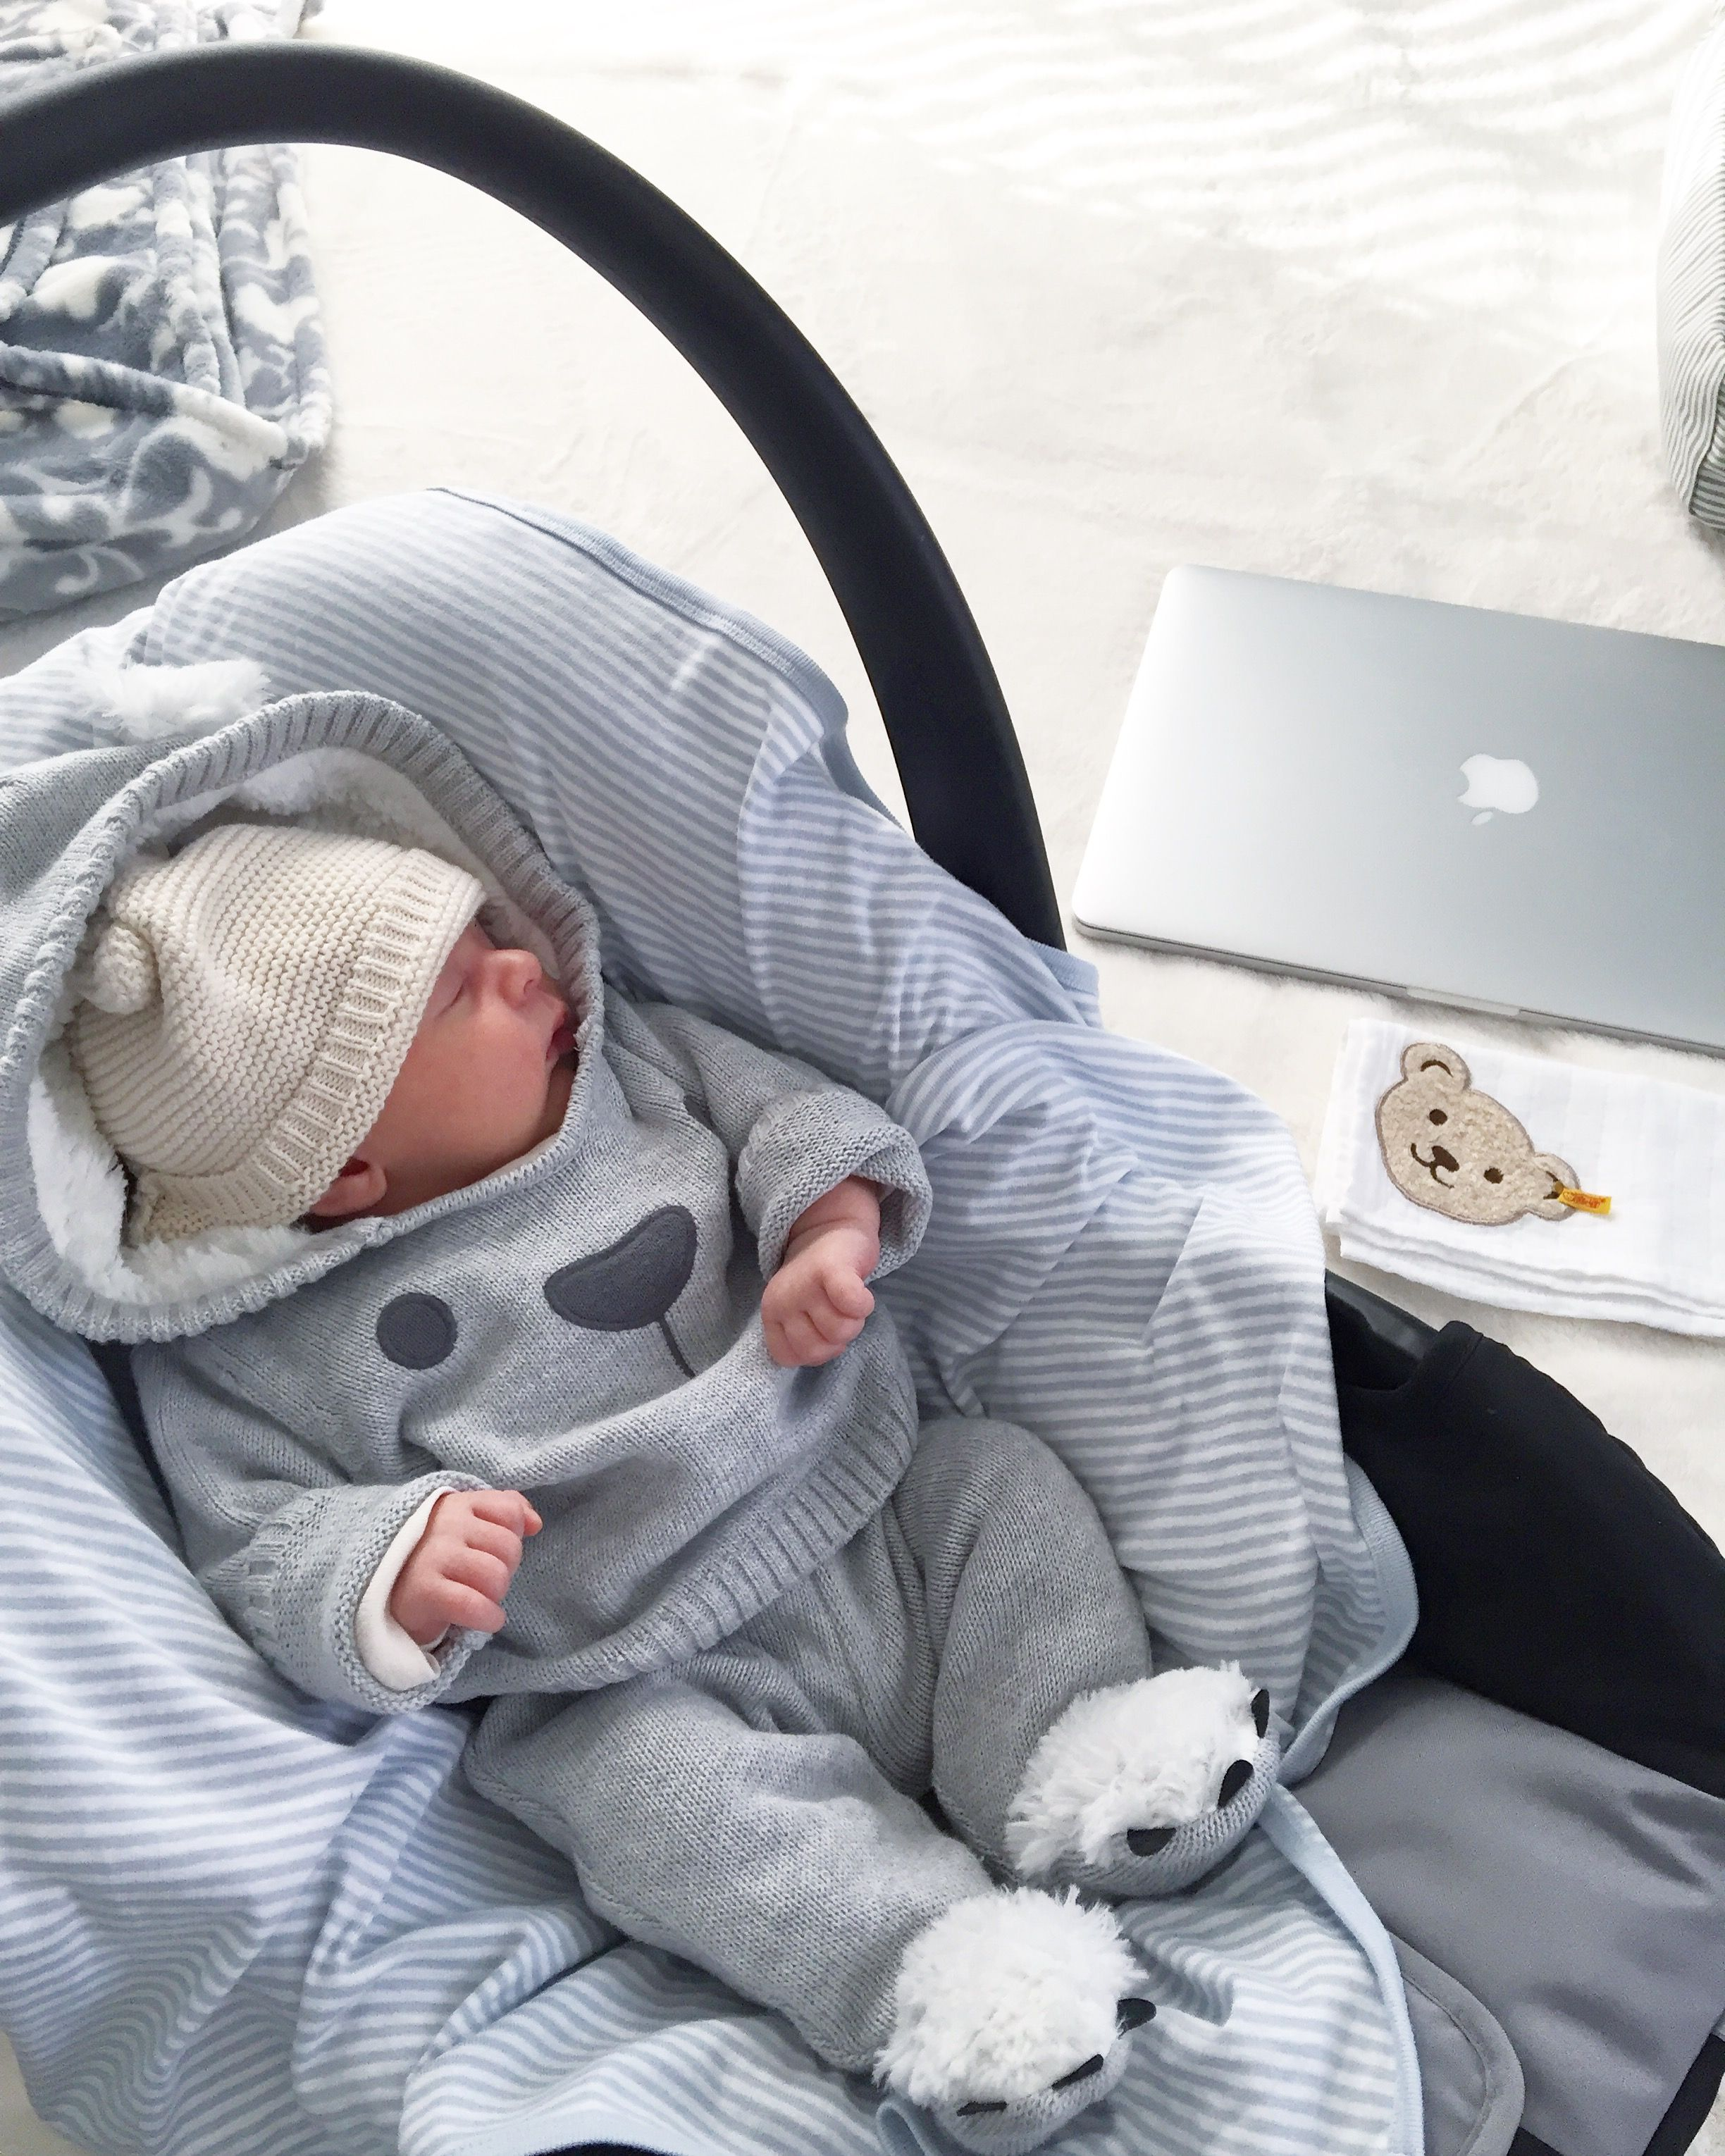 Discover ideas about baby tumblr